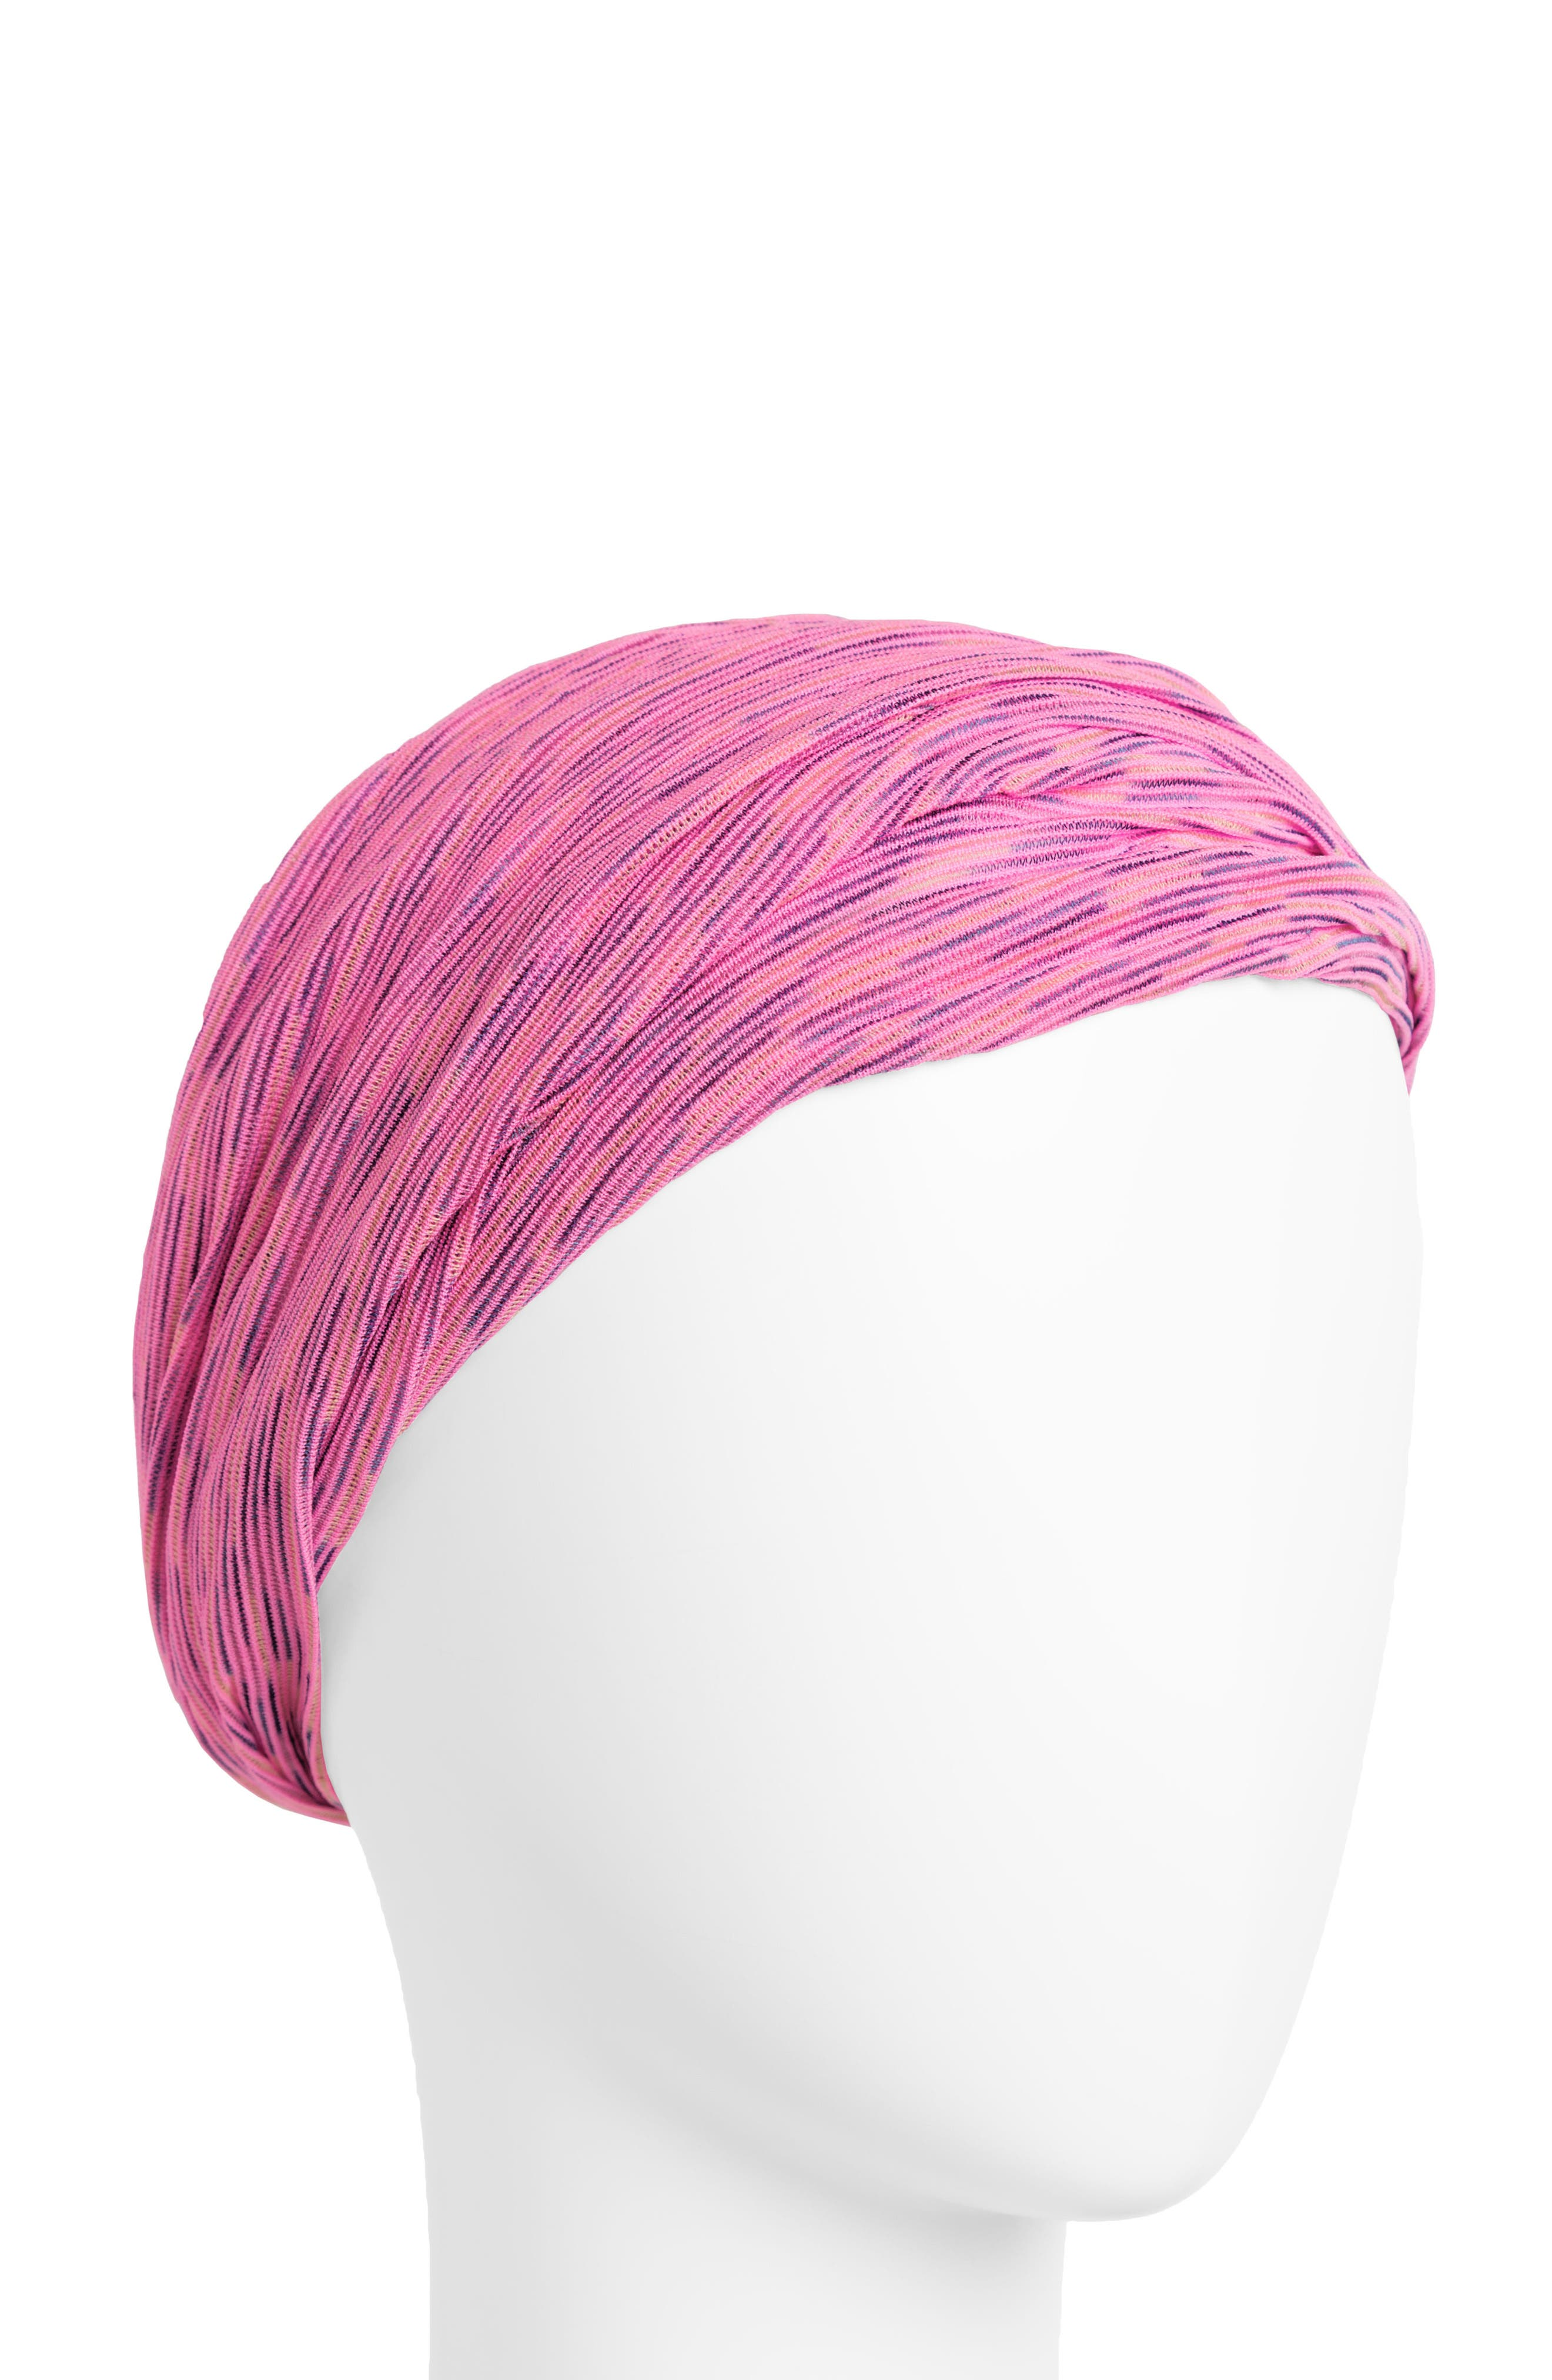 Space Dye Relaxed Turban Head Wrap,                             Main thumbnail 1, color,                             PINK